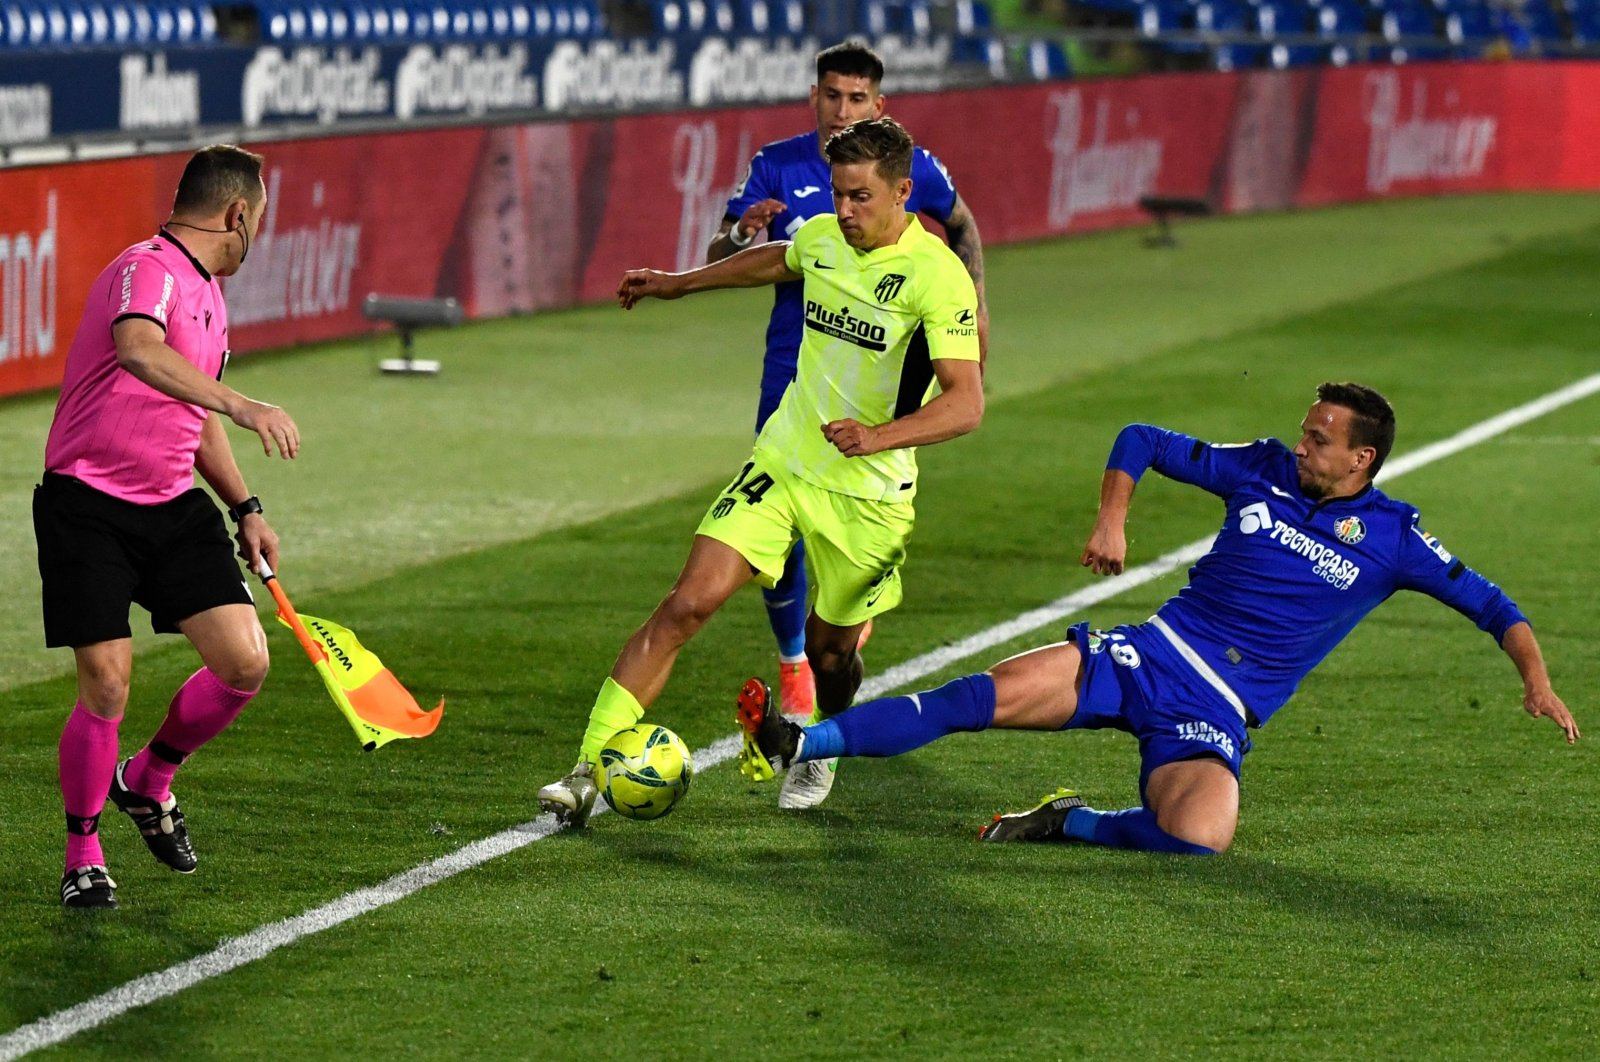 Atletico Madrid midfielder Marcos Llorente (L) is tackled by Getafe midfielder Mauro Arambarri during a La Liga match at the Coliseum Alfonso Perez stadium, Getafe, south of Madrid, March 13, 2021. (AFP Photo)